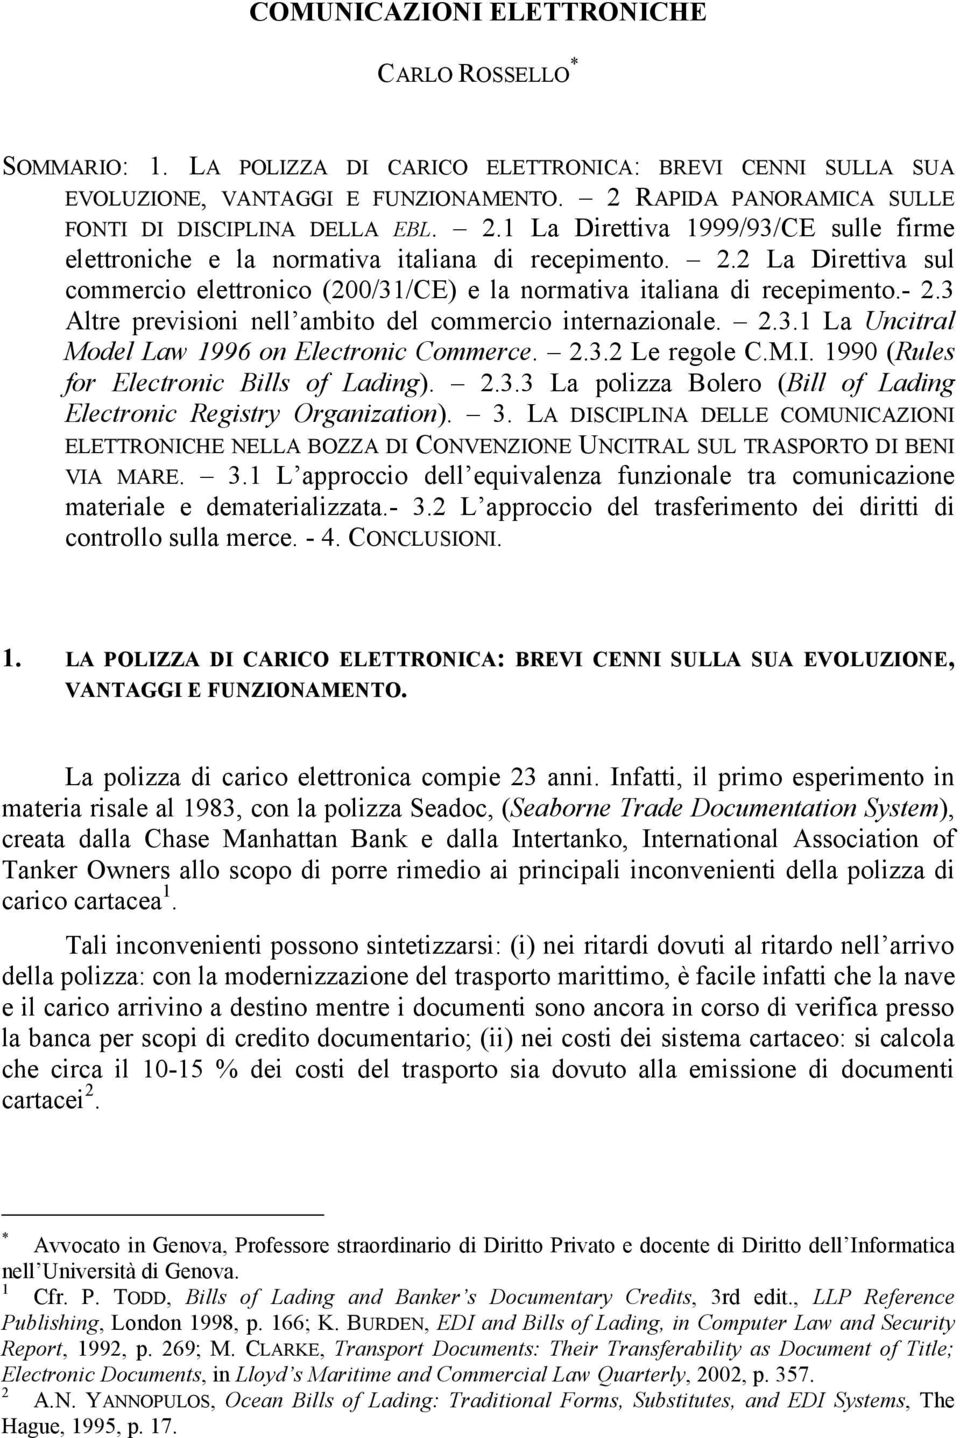 - 2.3 Altre previsioni nell ambito del commercio internazionale. 2.3.1 La Uncitral Model Law 1996 on Electronic Commerce. 2.3.2 Le regole C.M.I. 1990 (Rules for Electronic Bills of Lading). 2.3.3 La polizza Bolero (Bill of Lading Electronic Registry Organization).